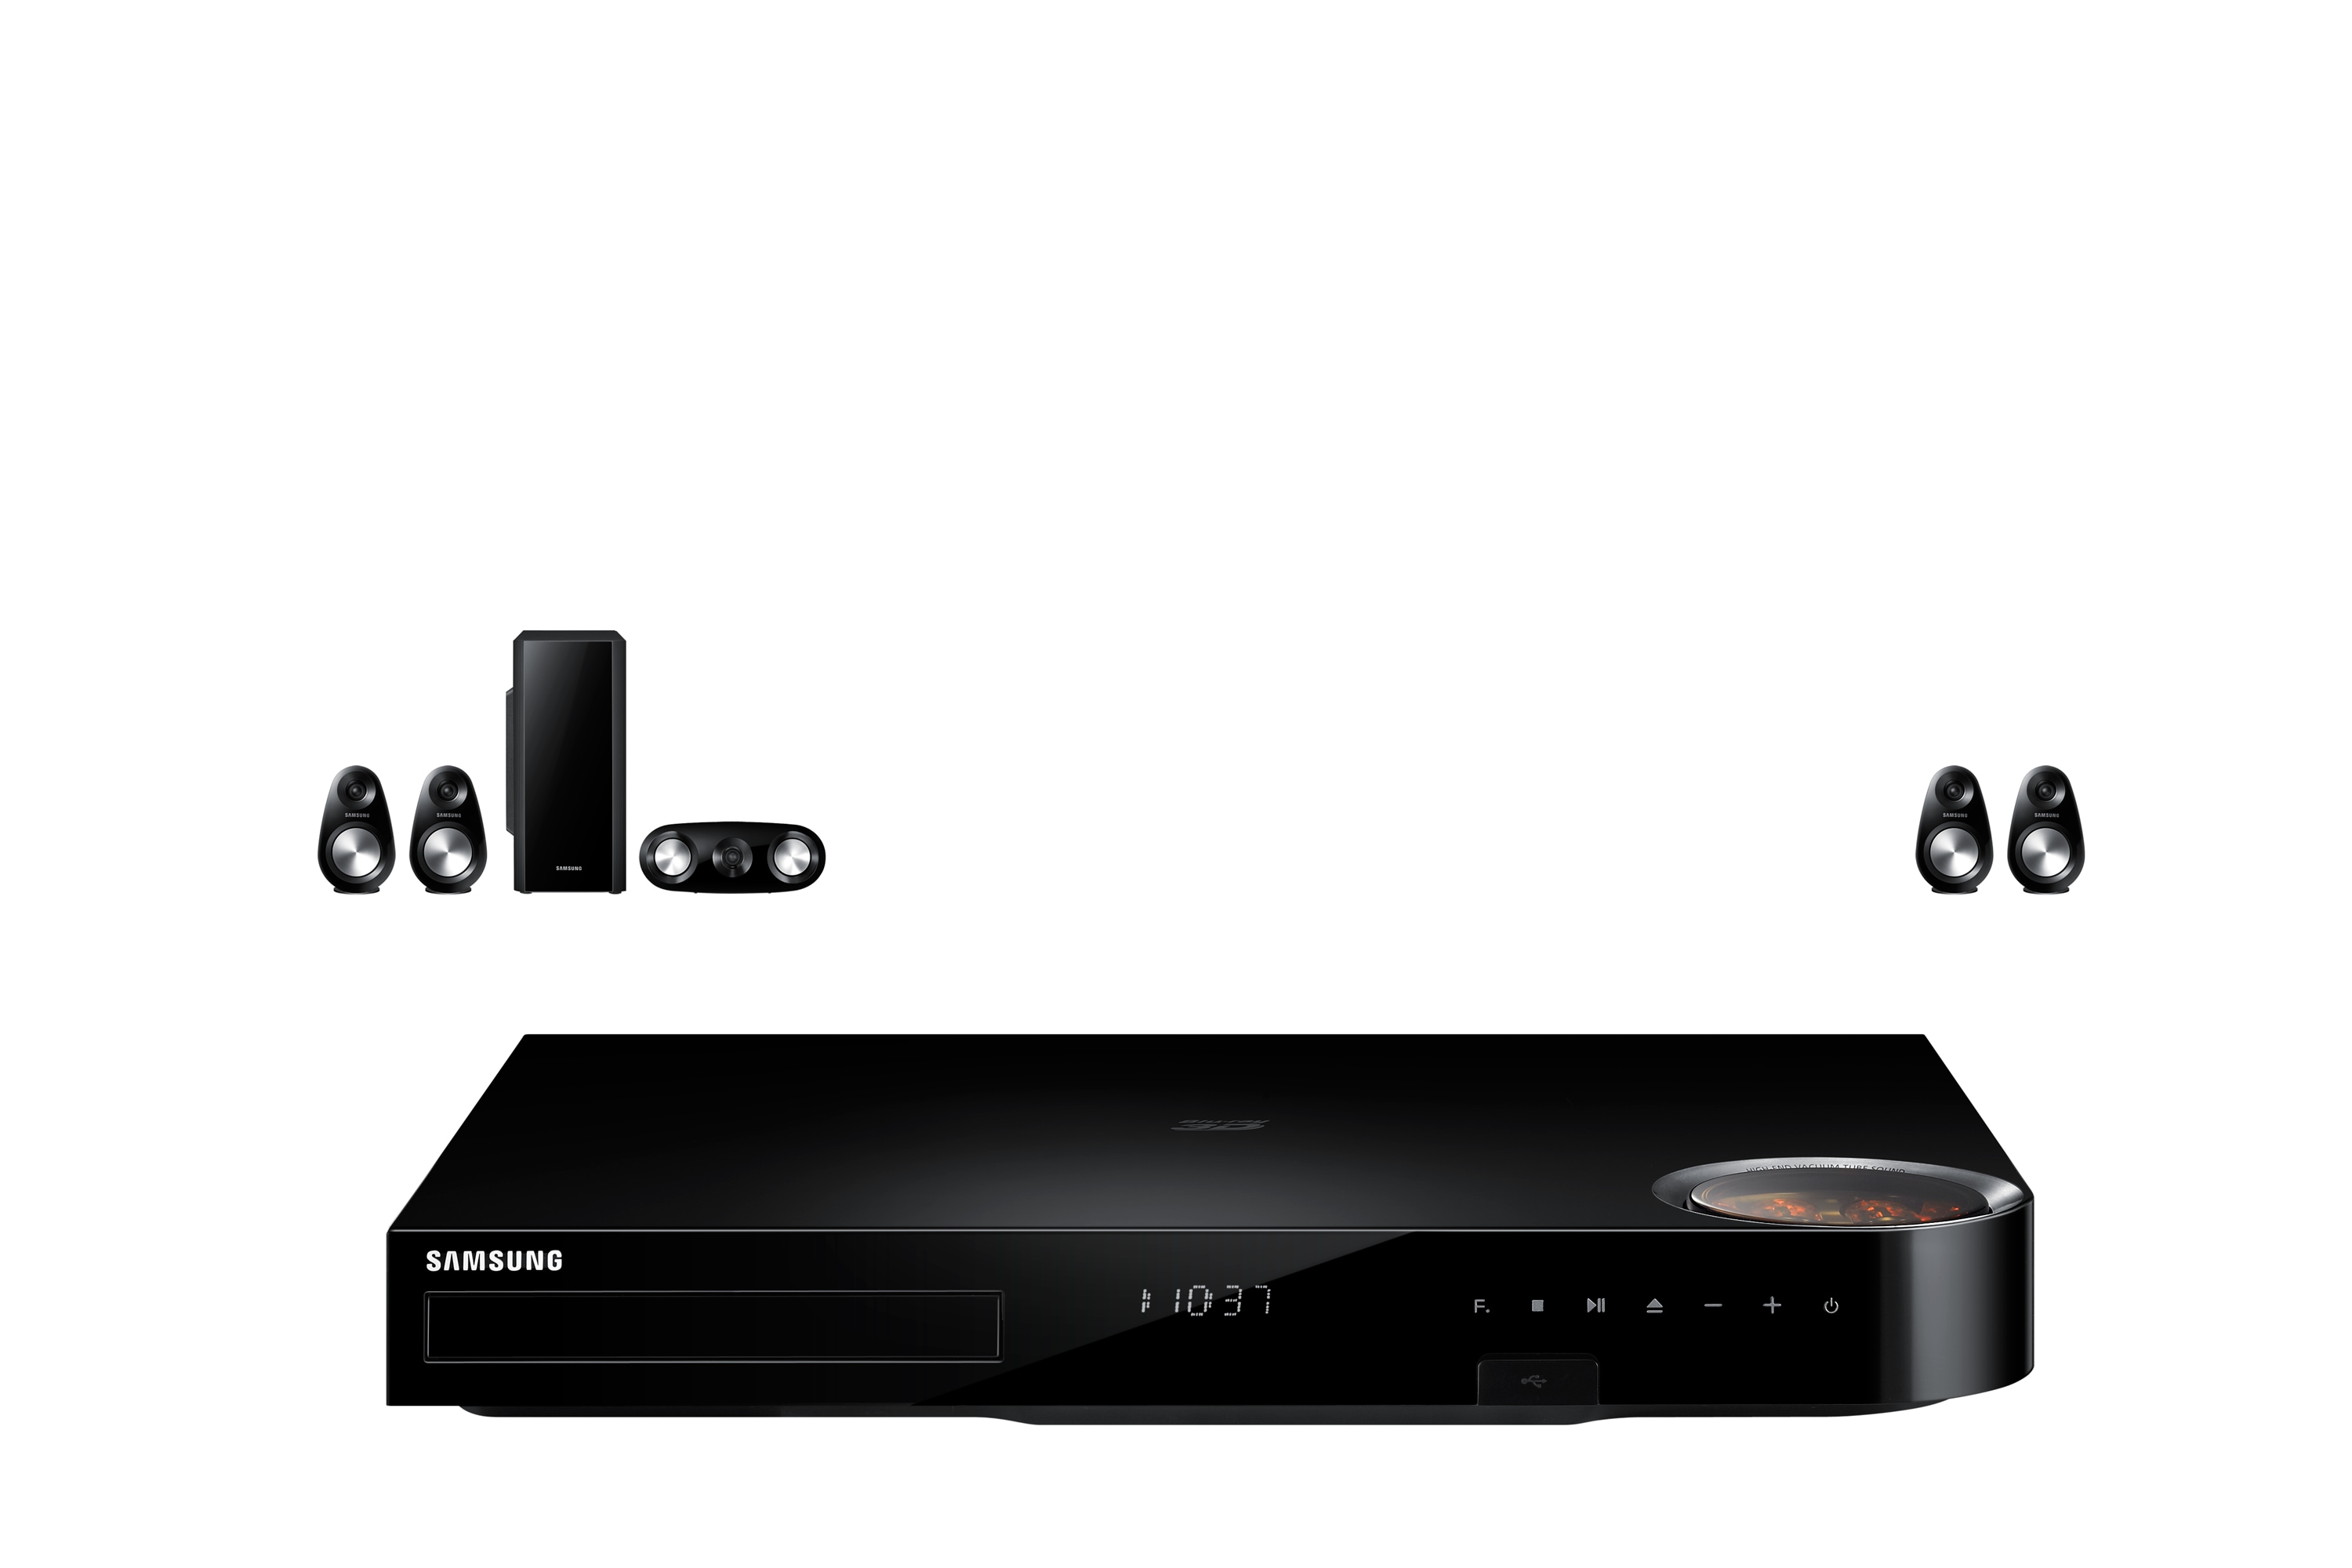 HT-F6500 5 Speaker Smart 3D Blu-ray & DVD Home Entertainment System Detailed Black